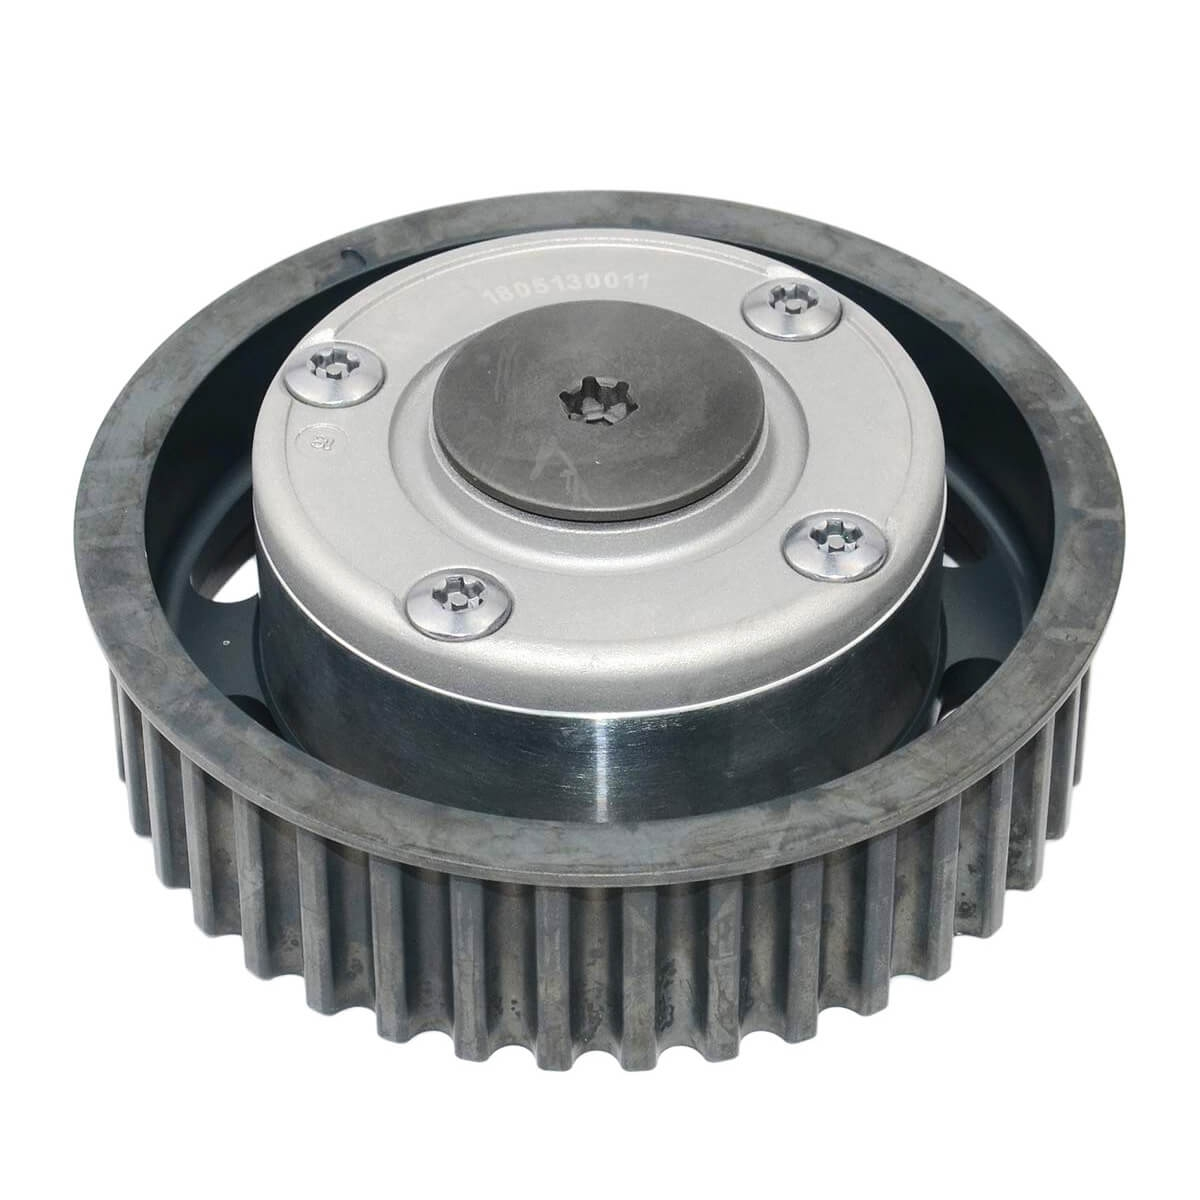 AUDI S5 Cam Dephaser Pulley